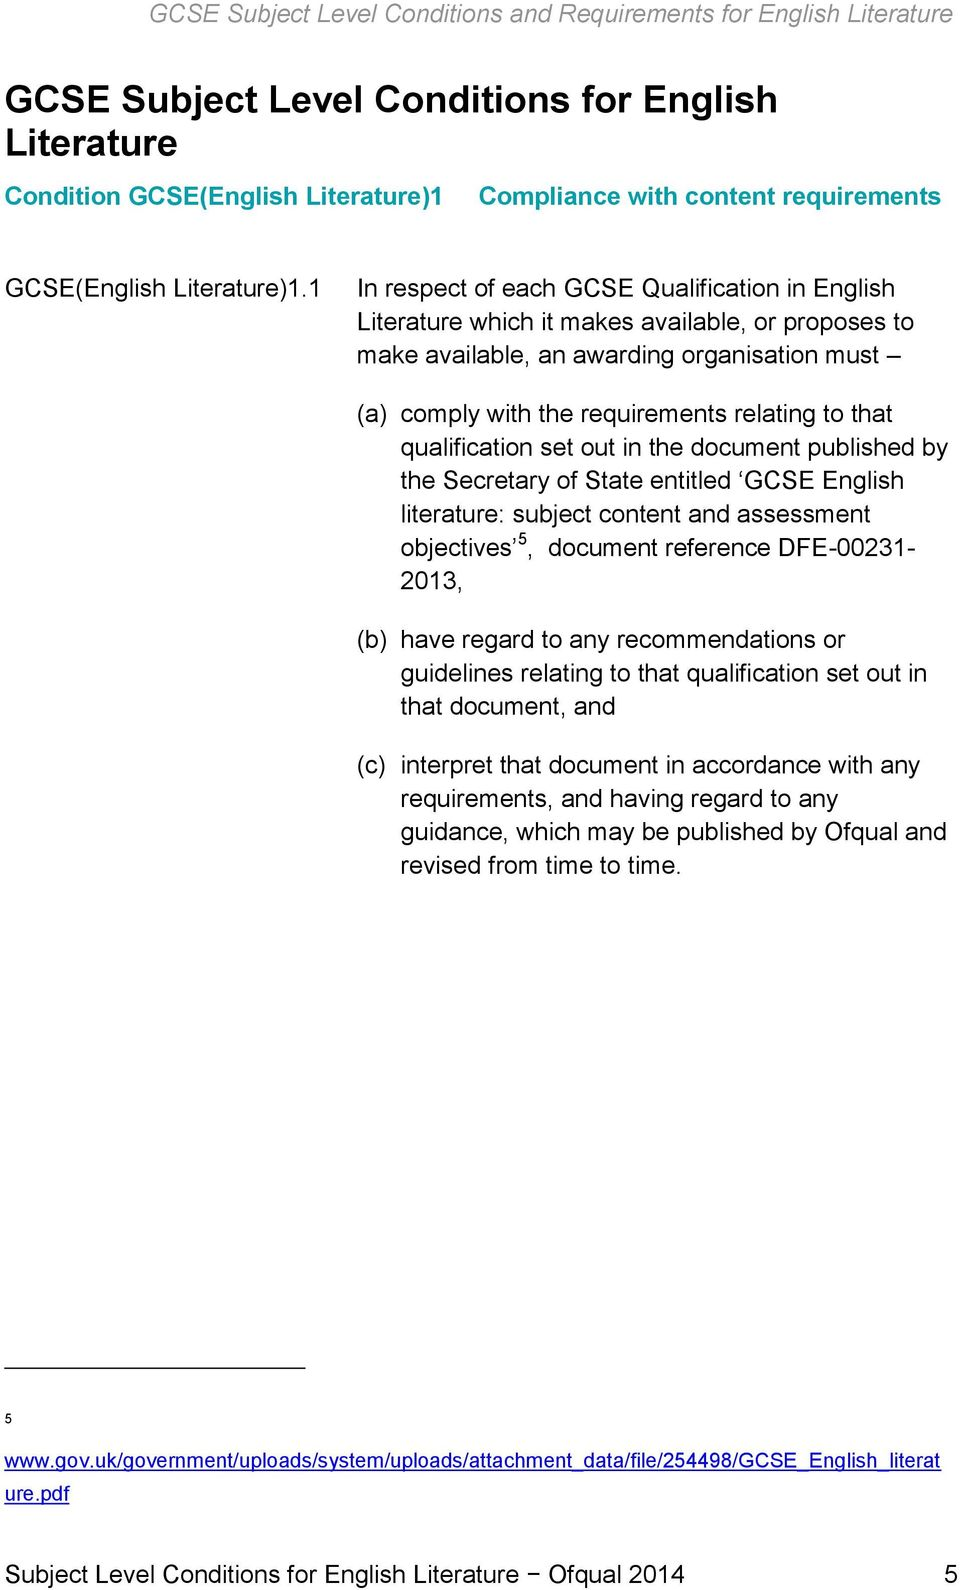 1 In respect of each GCSE Qualification in English Literature which it makes available, or proposes to make available, an awarding organisation must (a) comply with the requirements relating to that